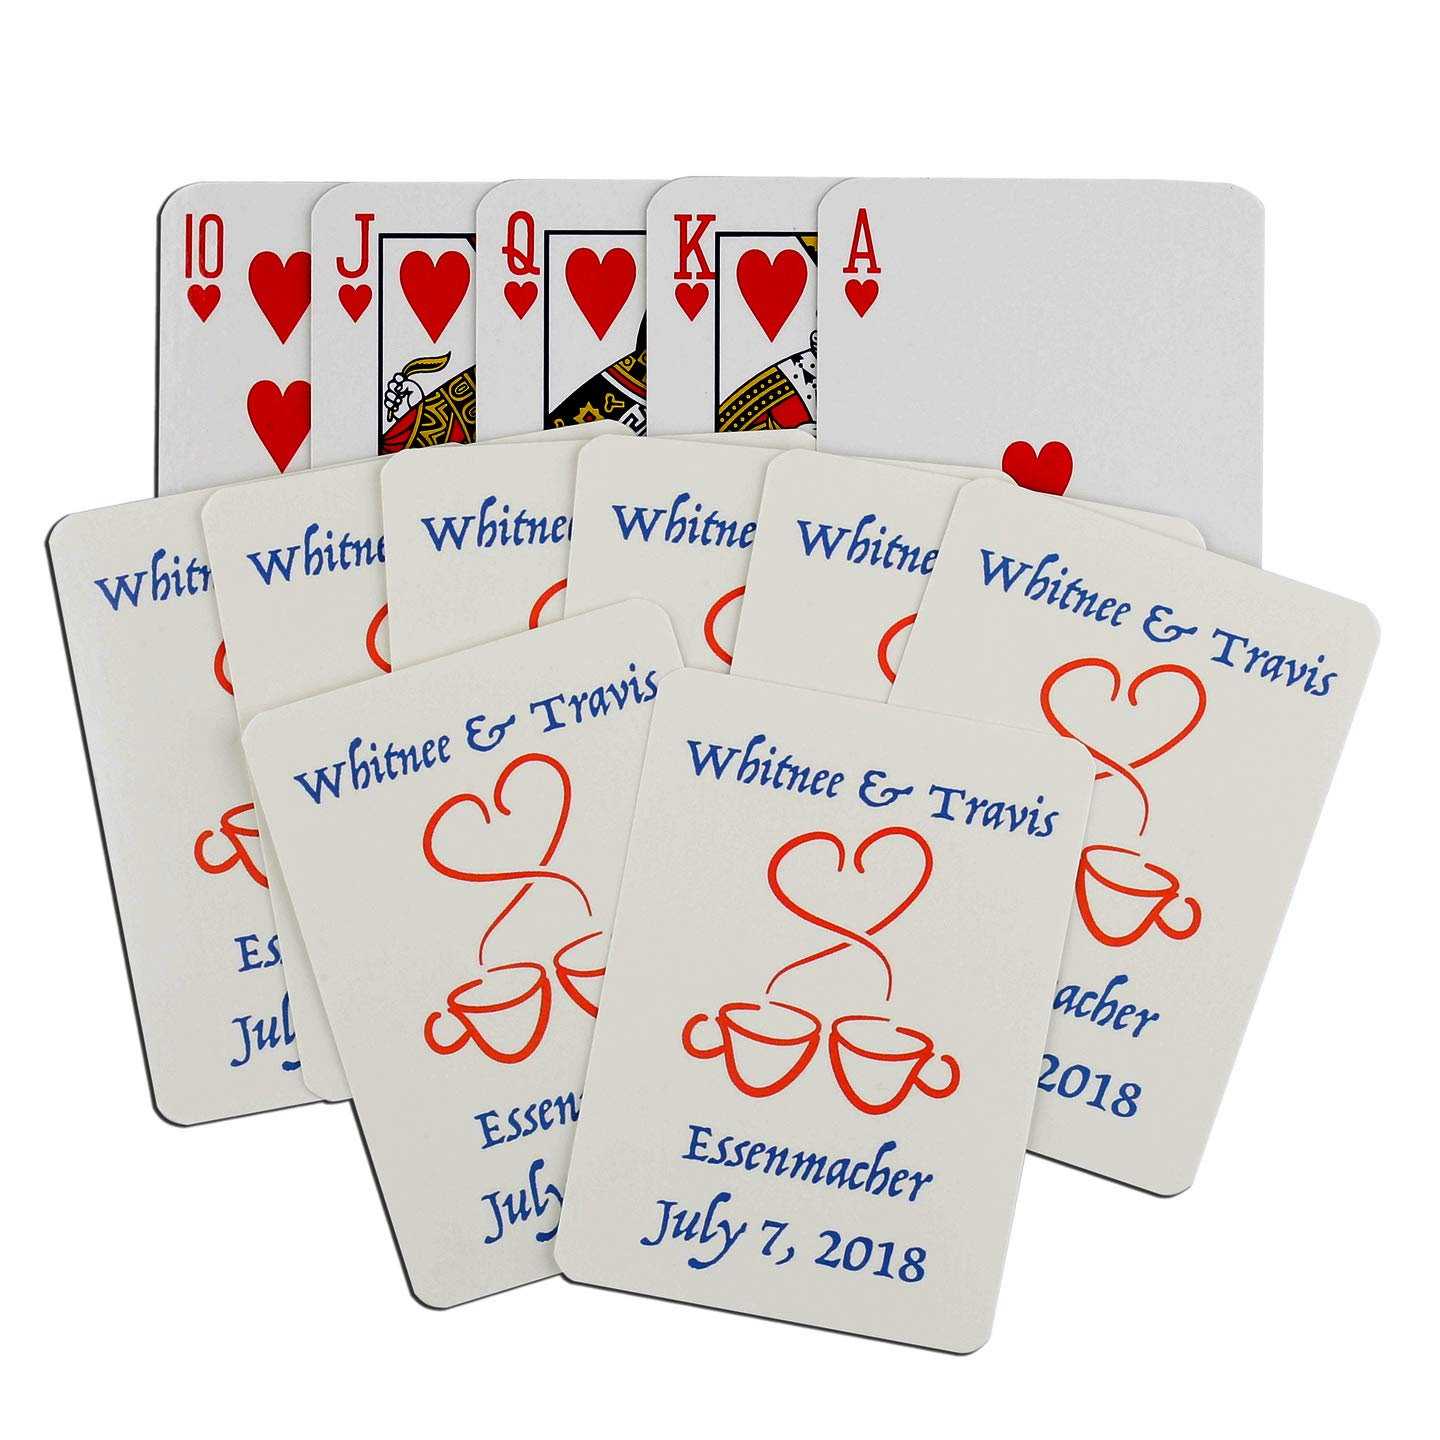 50 Decks You're On Deck Personalized Playing Cards, Custom Deck of Cards- Family, Weddings, Fundraisers, Corporate Events, Bar/Bat Mitvahs, Clear Plastic Storage Case (2 1/2'' x 3 1/2'')